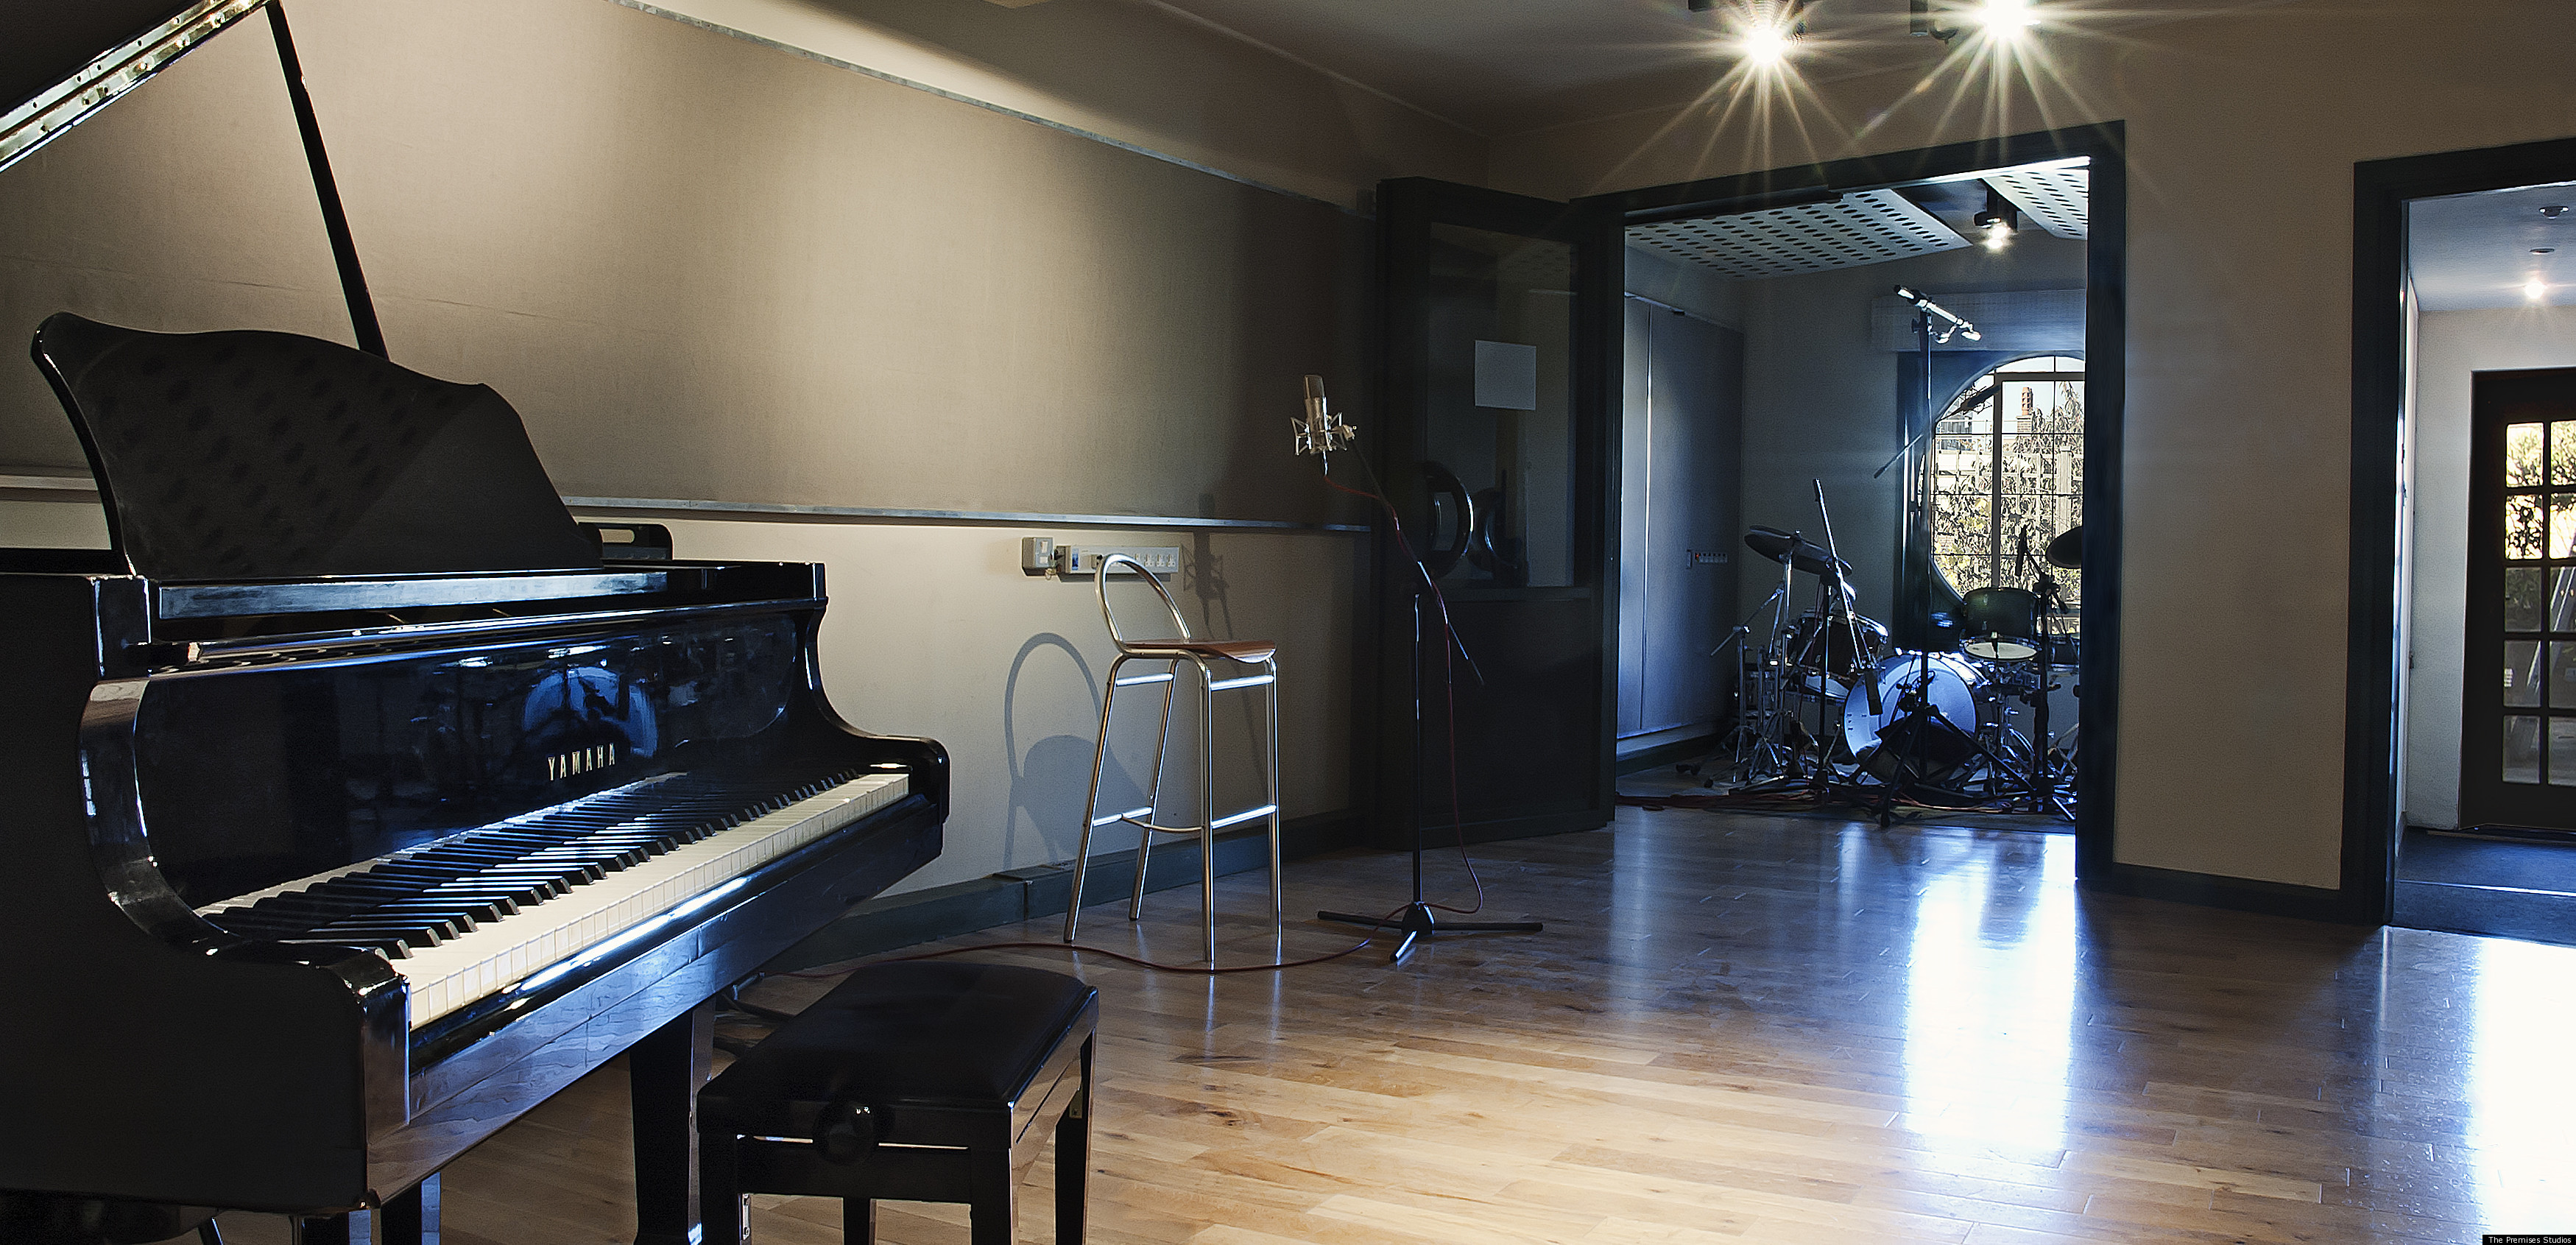 Solar Powered Recording Studios Lighting The Way For Music Industry